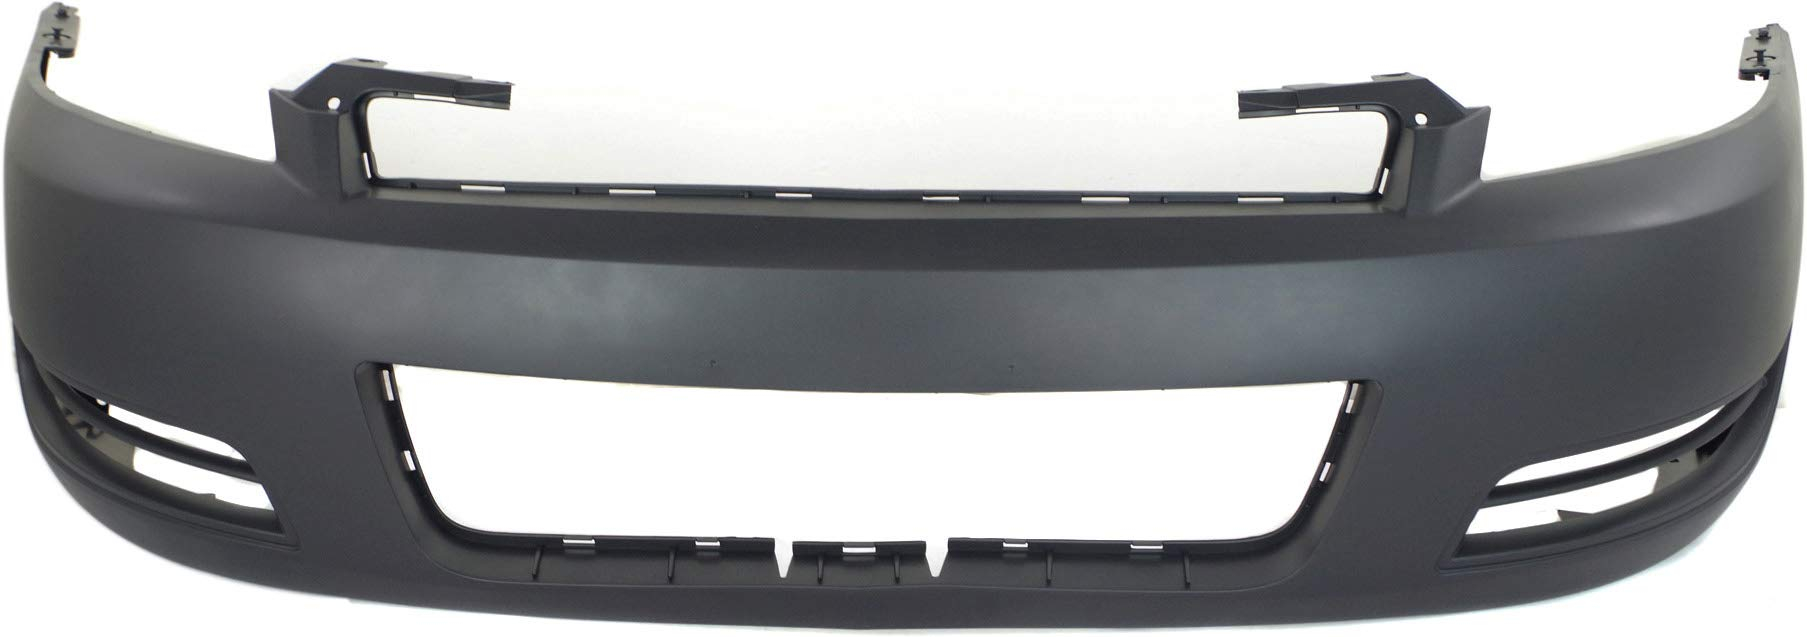 OE Replacement Chevrolet Impala Front Bumper Cover Partslink Number GM1000763